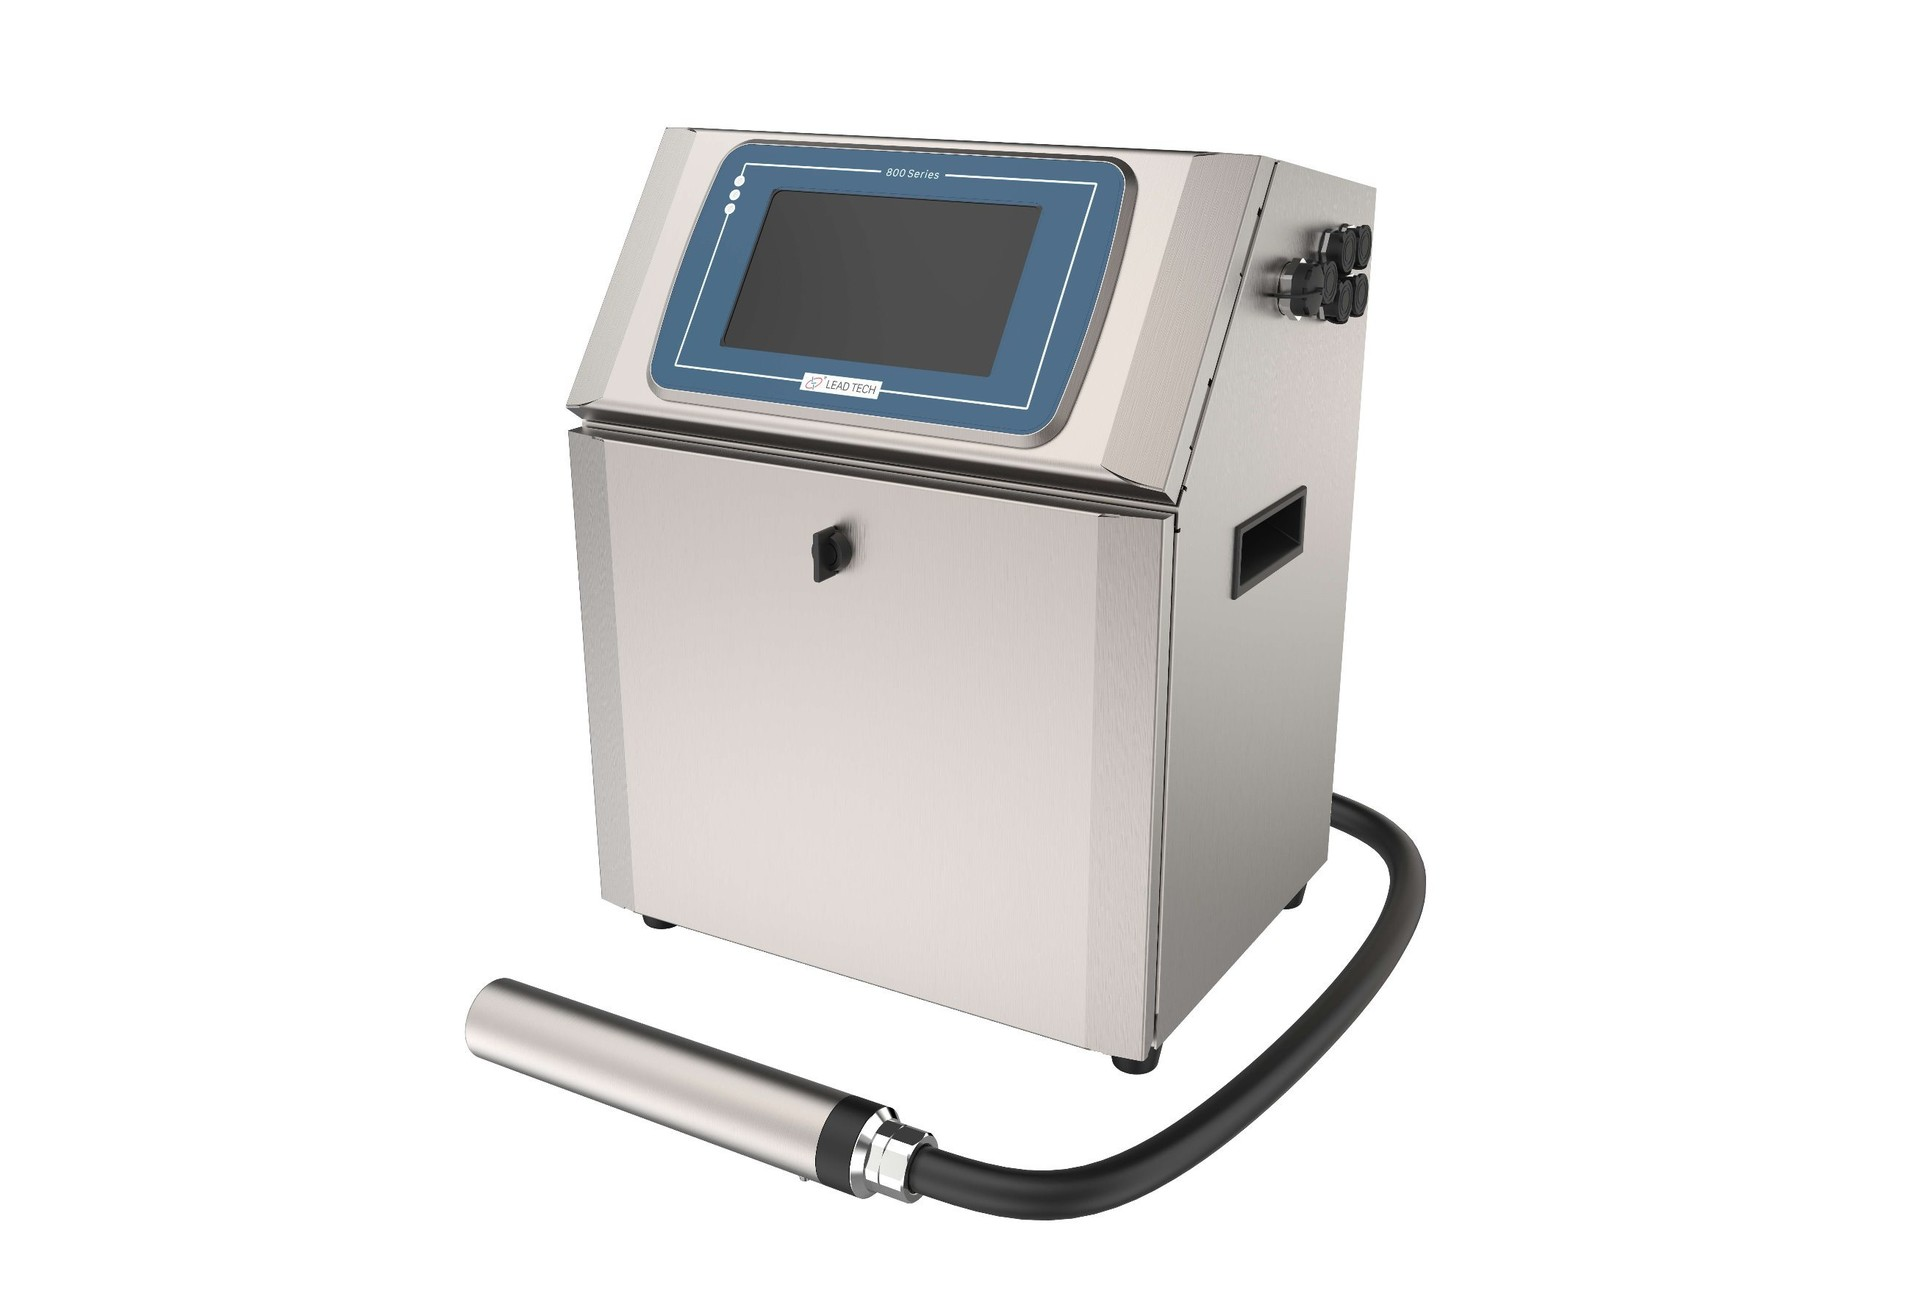 Lead Tech High Speed Digital Touch Screen Qr Code Cij Printing Machine for Cables, PVC Pet Bottles Lt800